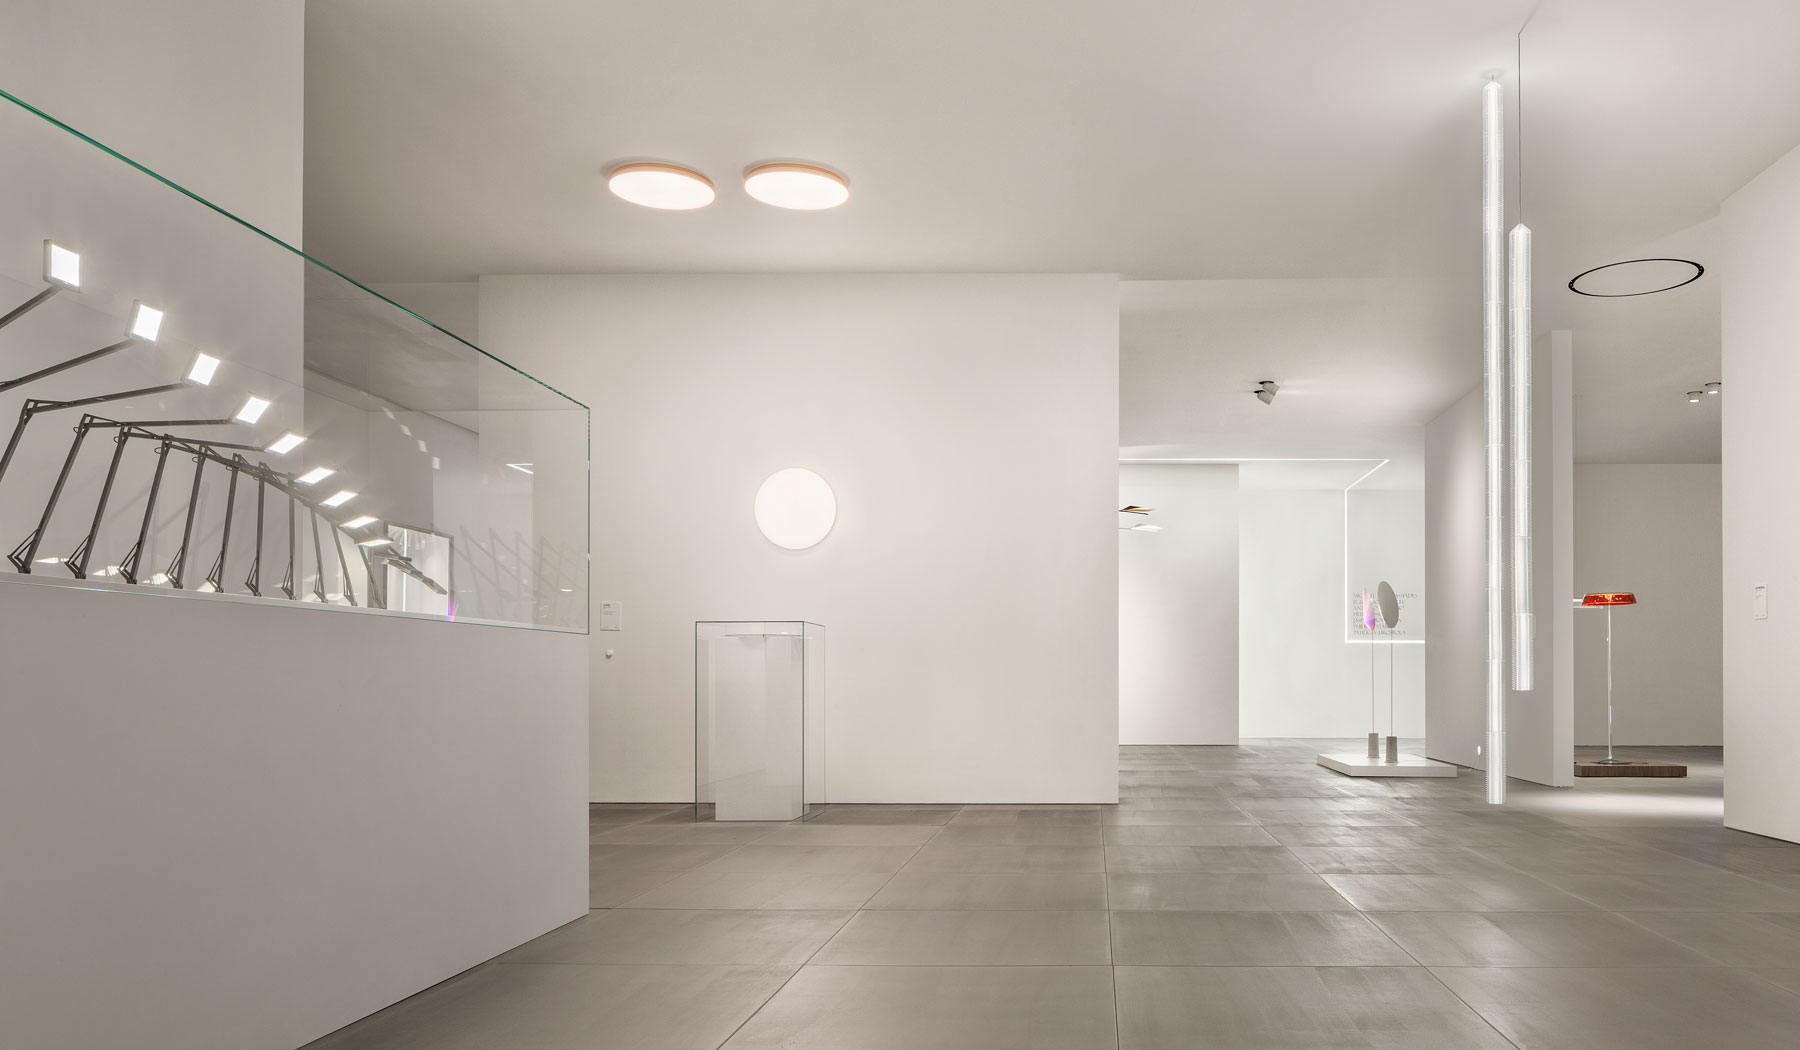 FLOS booth with Clara LED wall ceiling light fixture